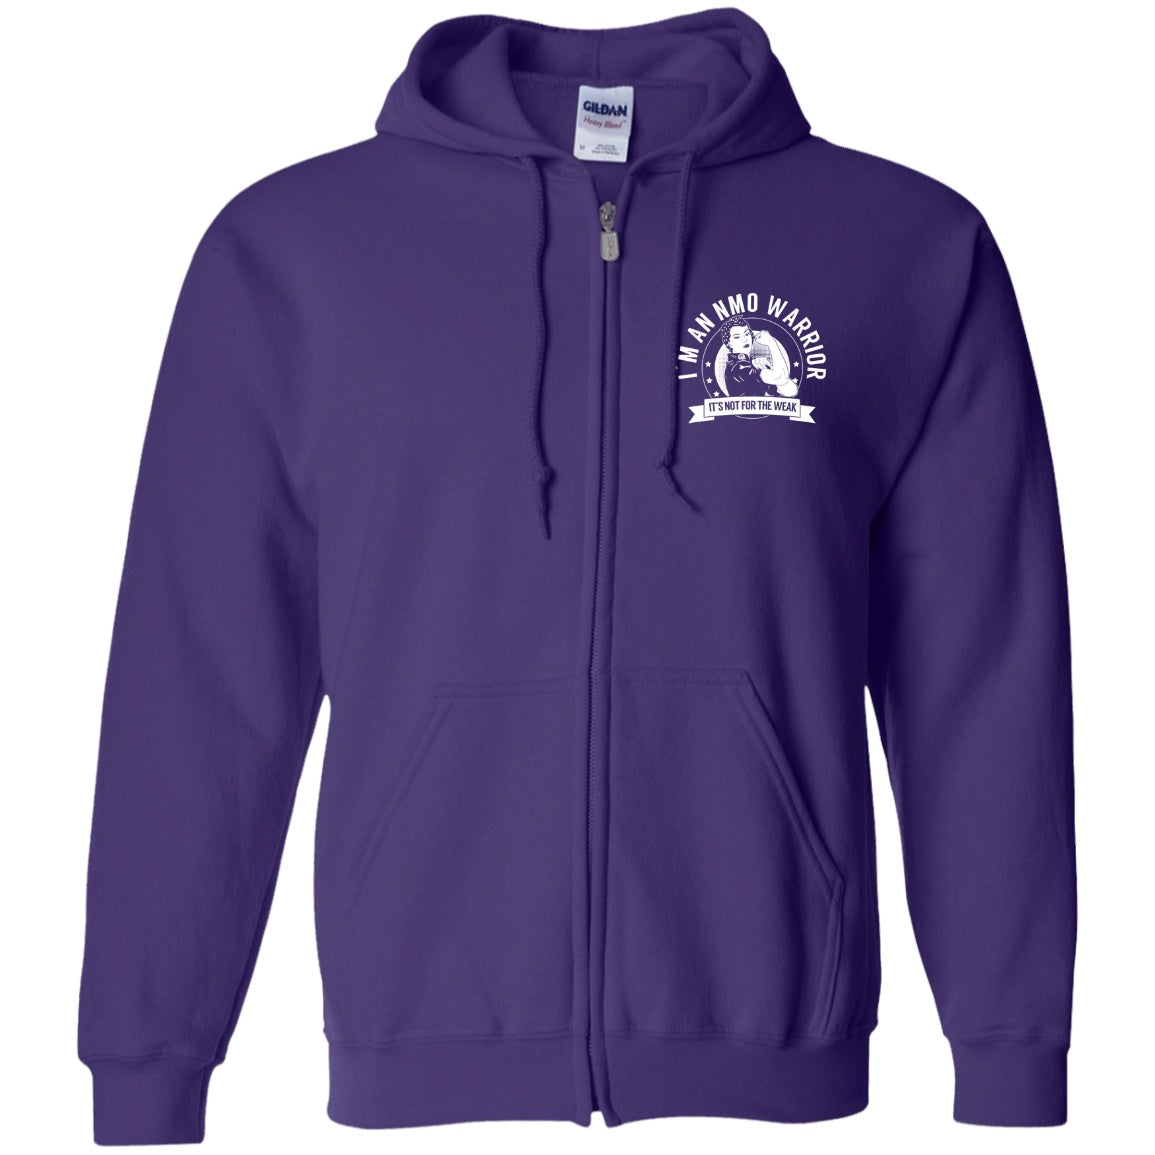 Neuromyelitis Optica - NMO Warrior NFTW  Zip Up Hooded Sweatshirt - The Unchargeables